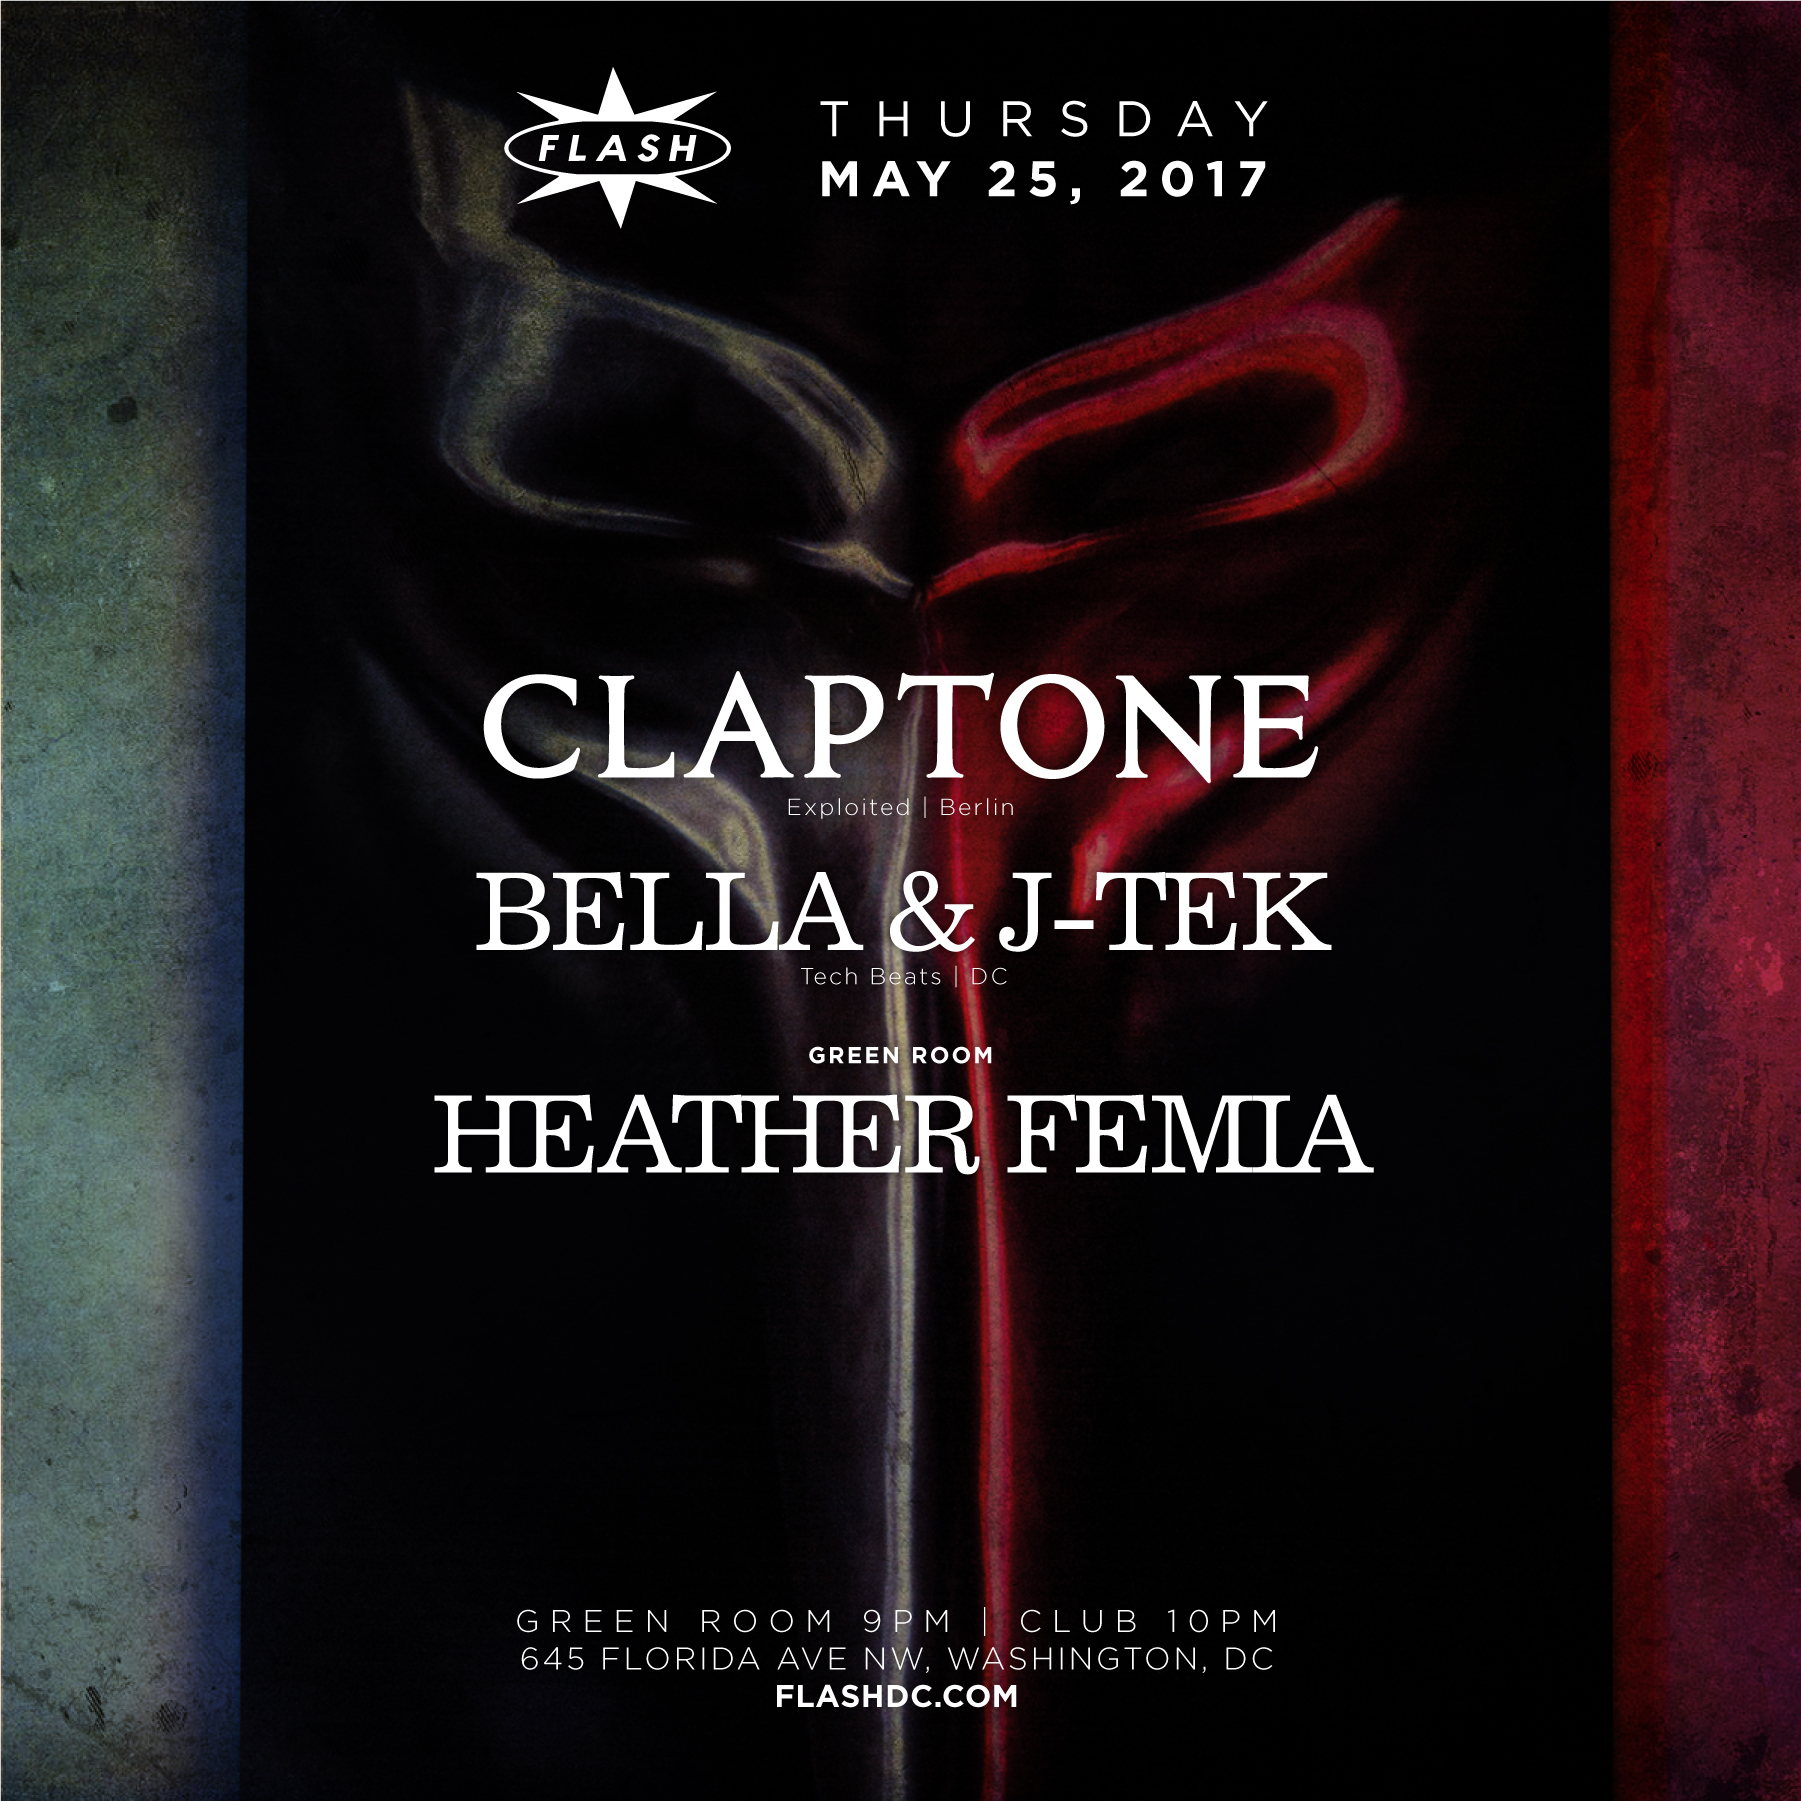 Claptone / Bella & J-Tek / Heather Femia event thumbnail